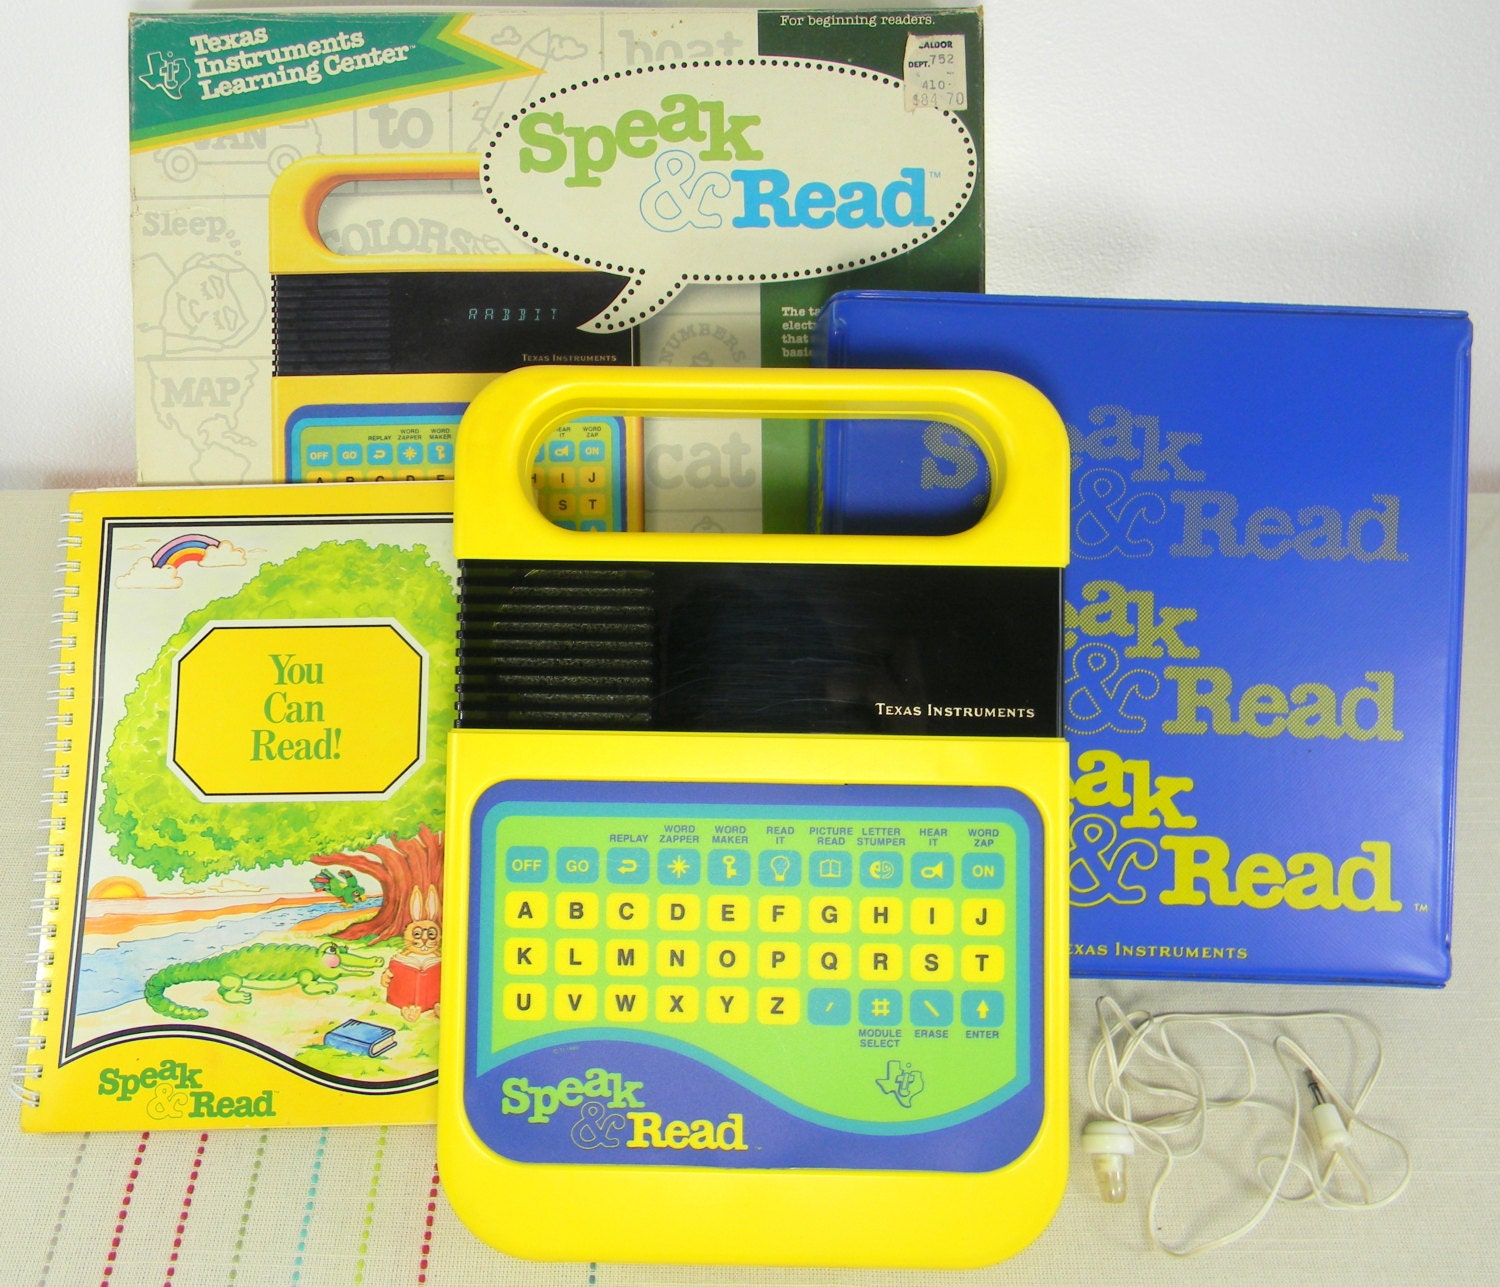 Speak and Read. Carry Case. Original Box.Booklet. Ear Phones.Texas Instruments.1980.Circuit Bending. FREE SHIPPING - LillysLuckyPenny